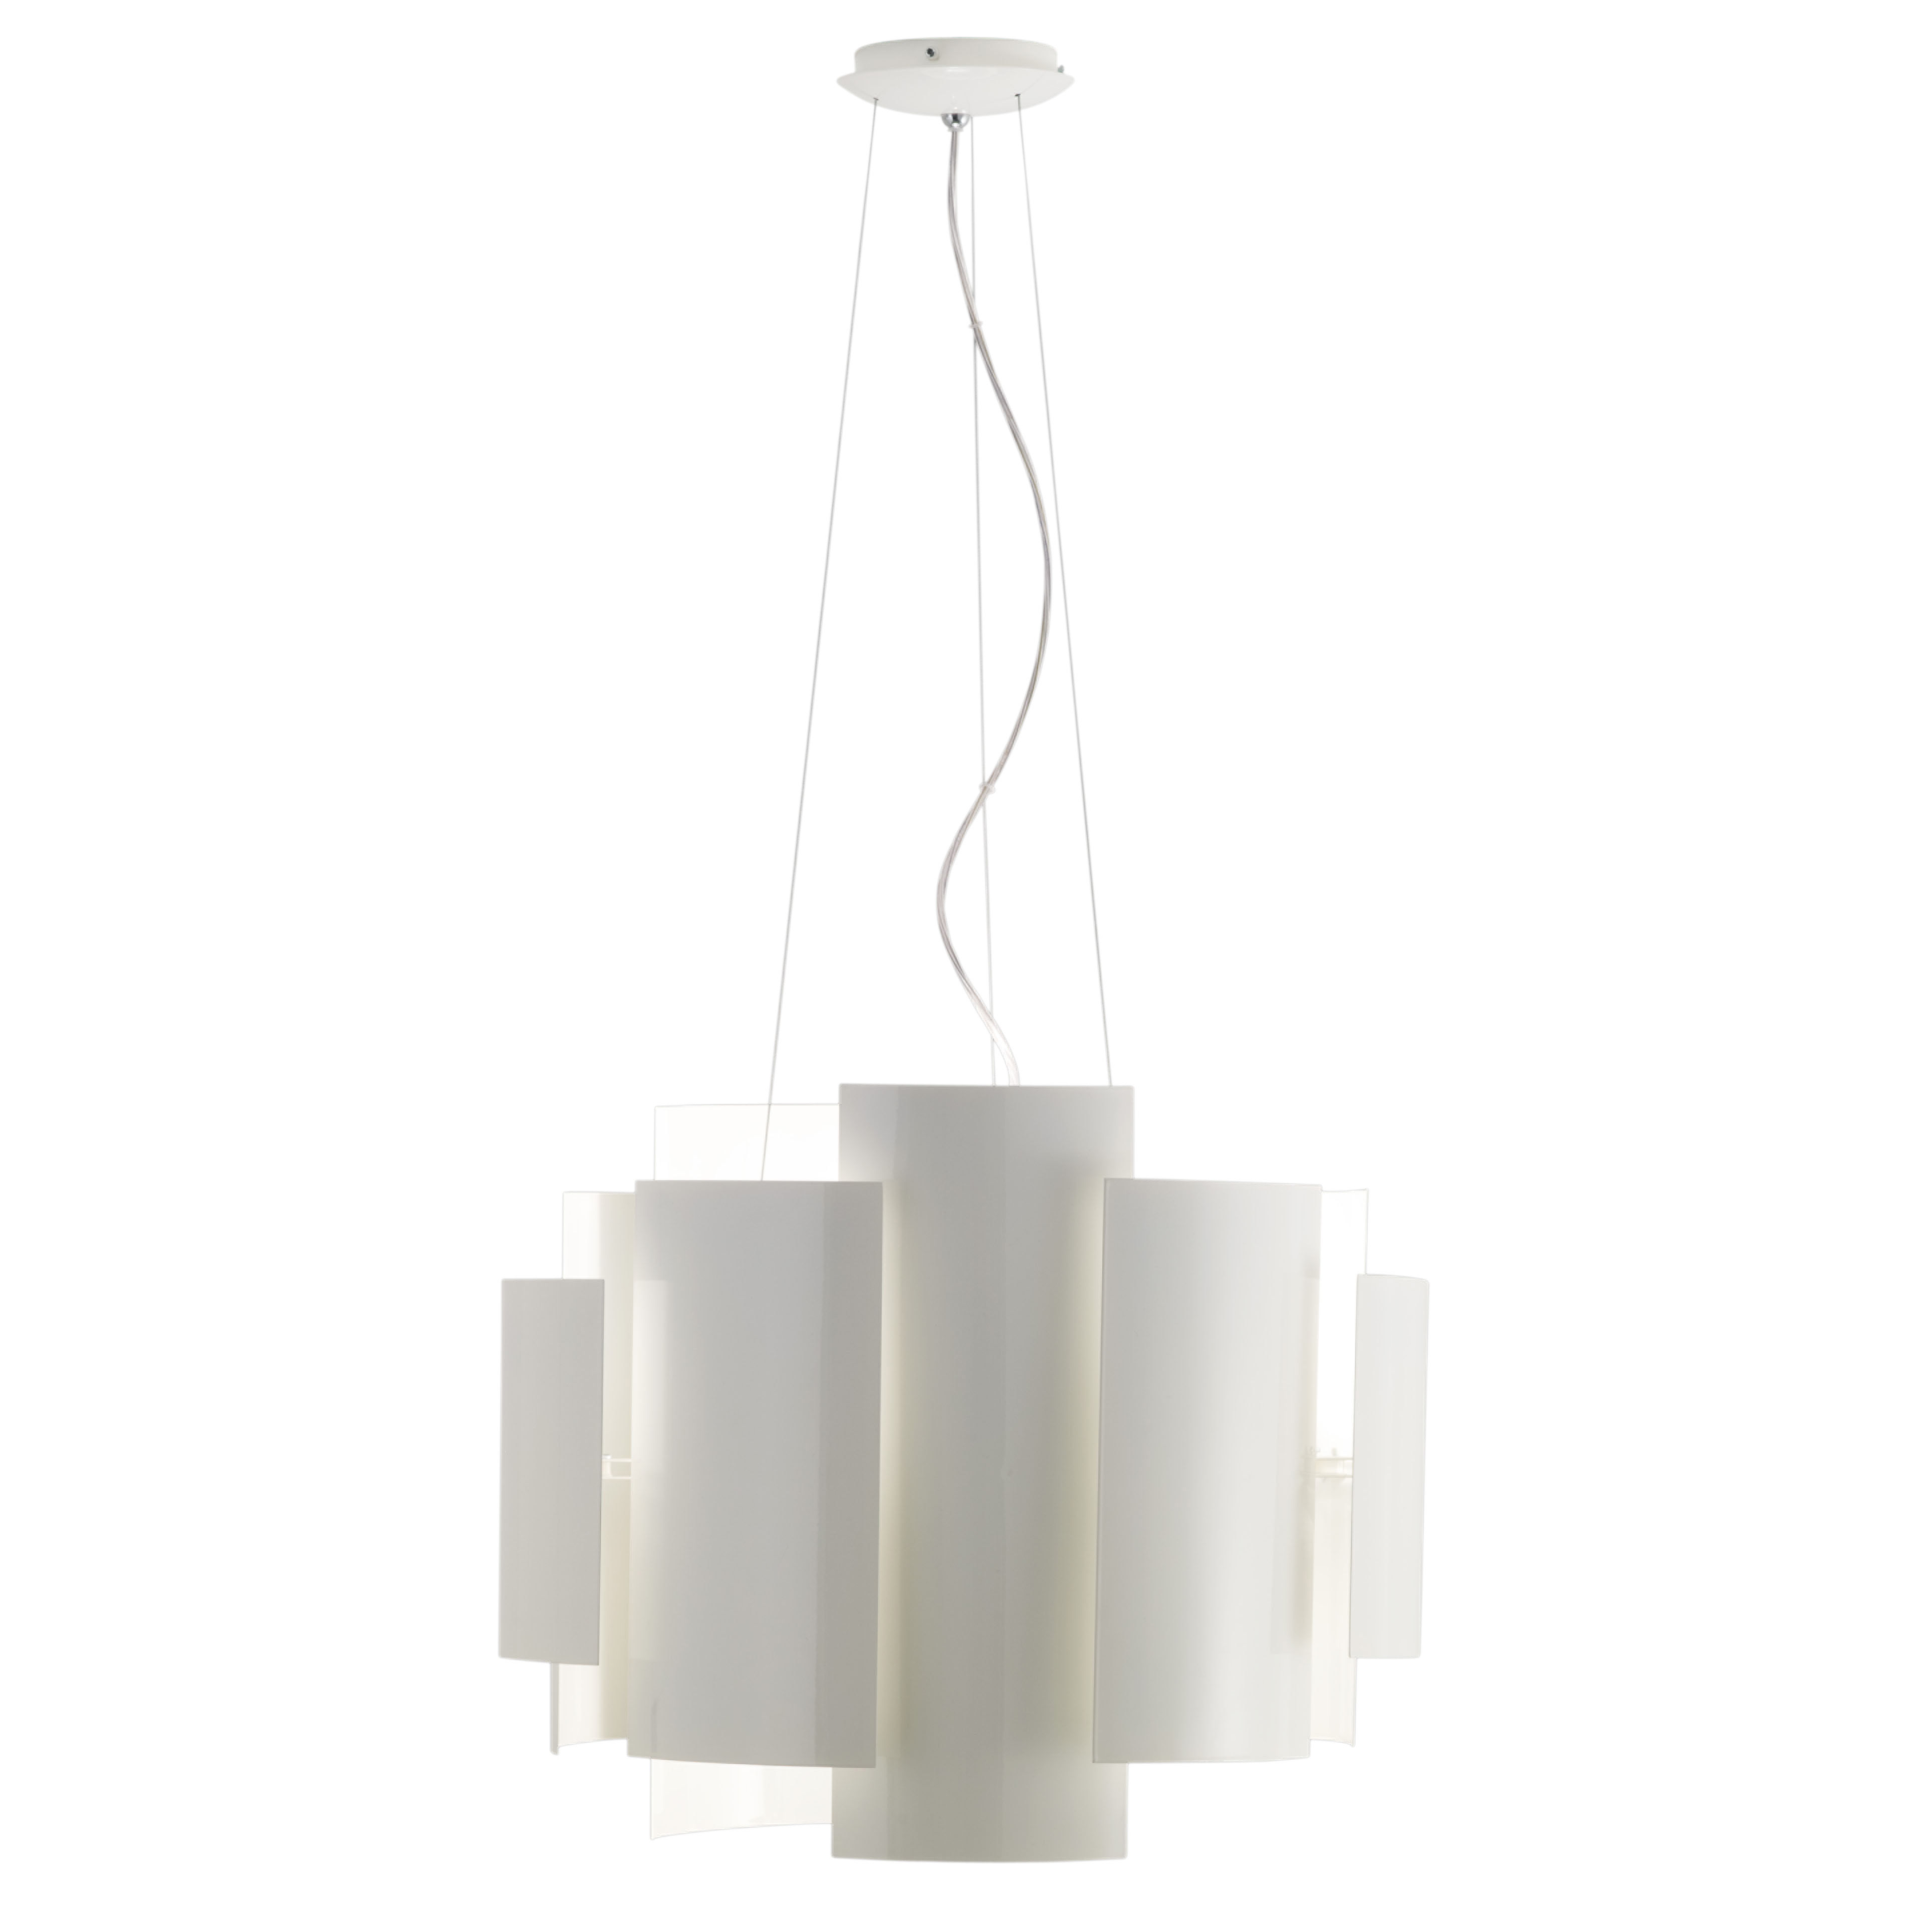 Luminaire - Suspension Skyline Ø 50 cm - Lumen Center Italia - Blanc - Métal laqué